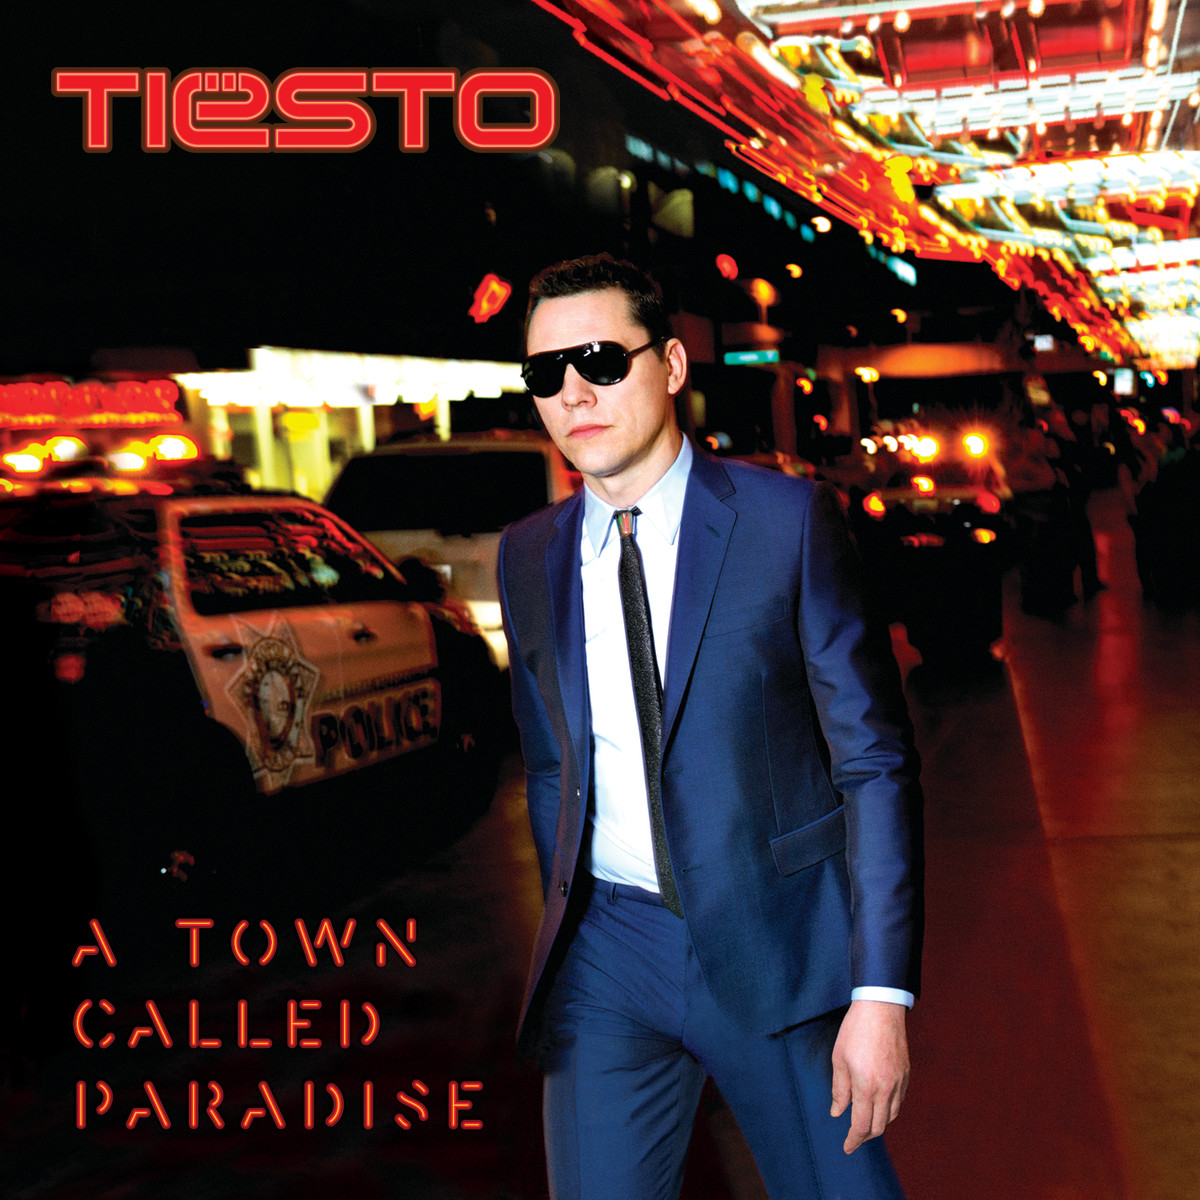 A Town Called Paradise Album Cover